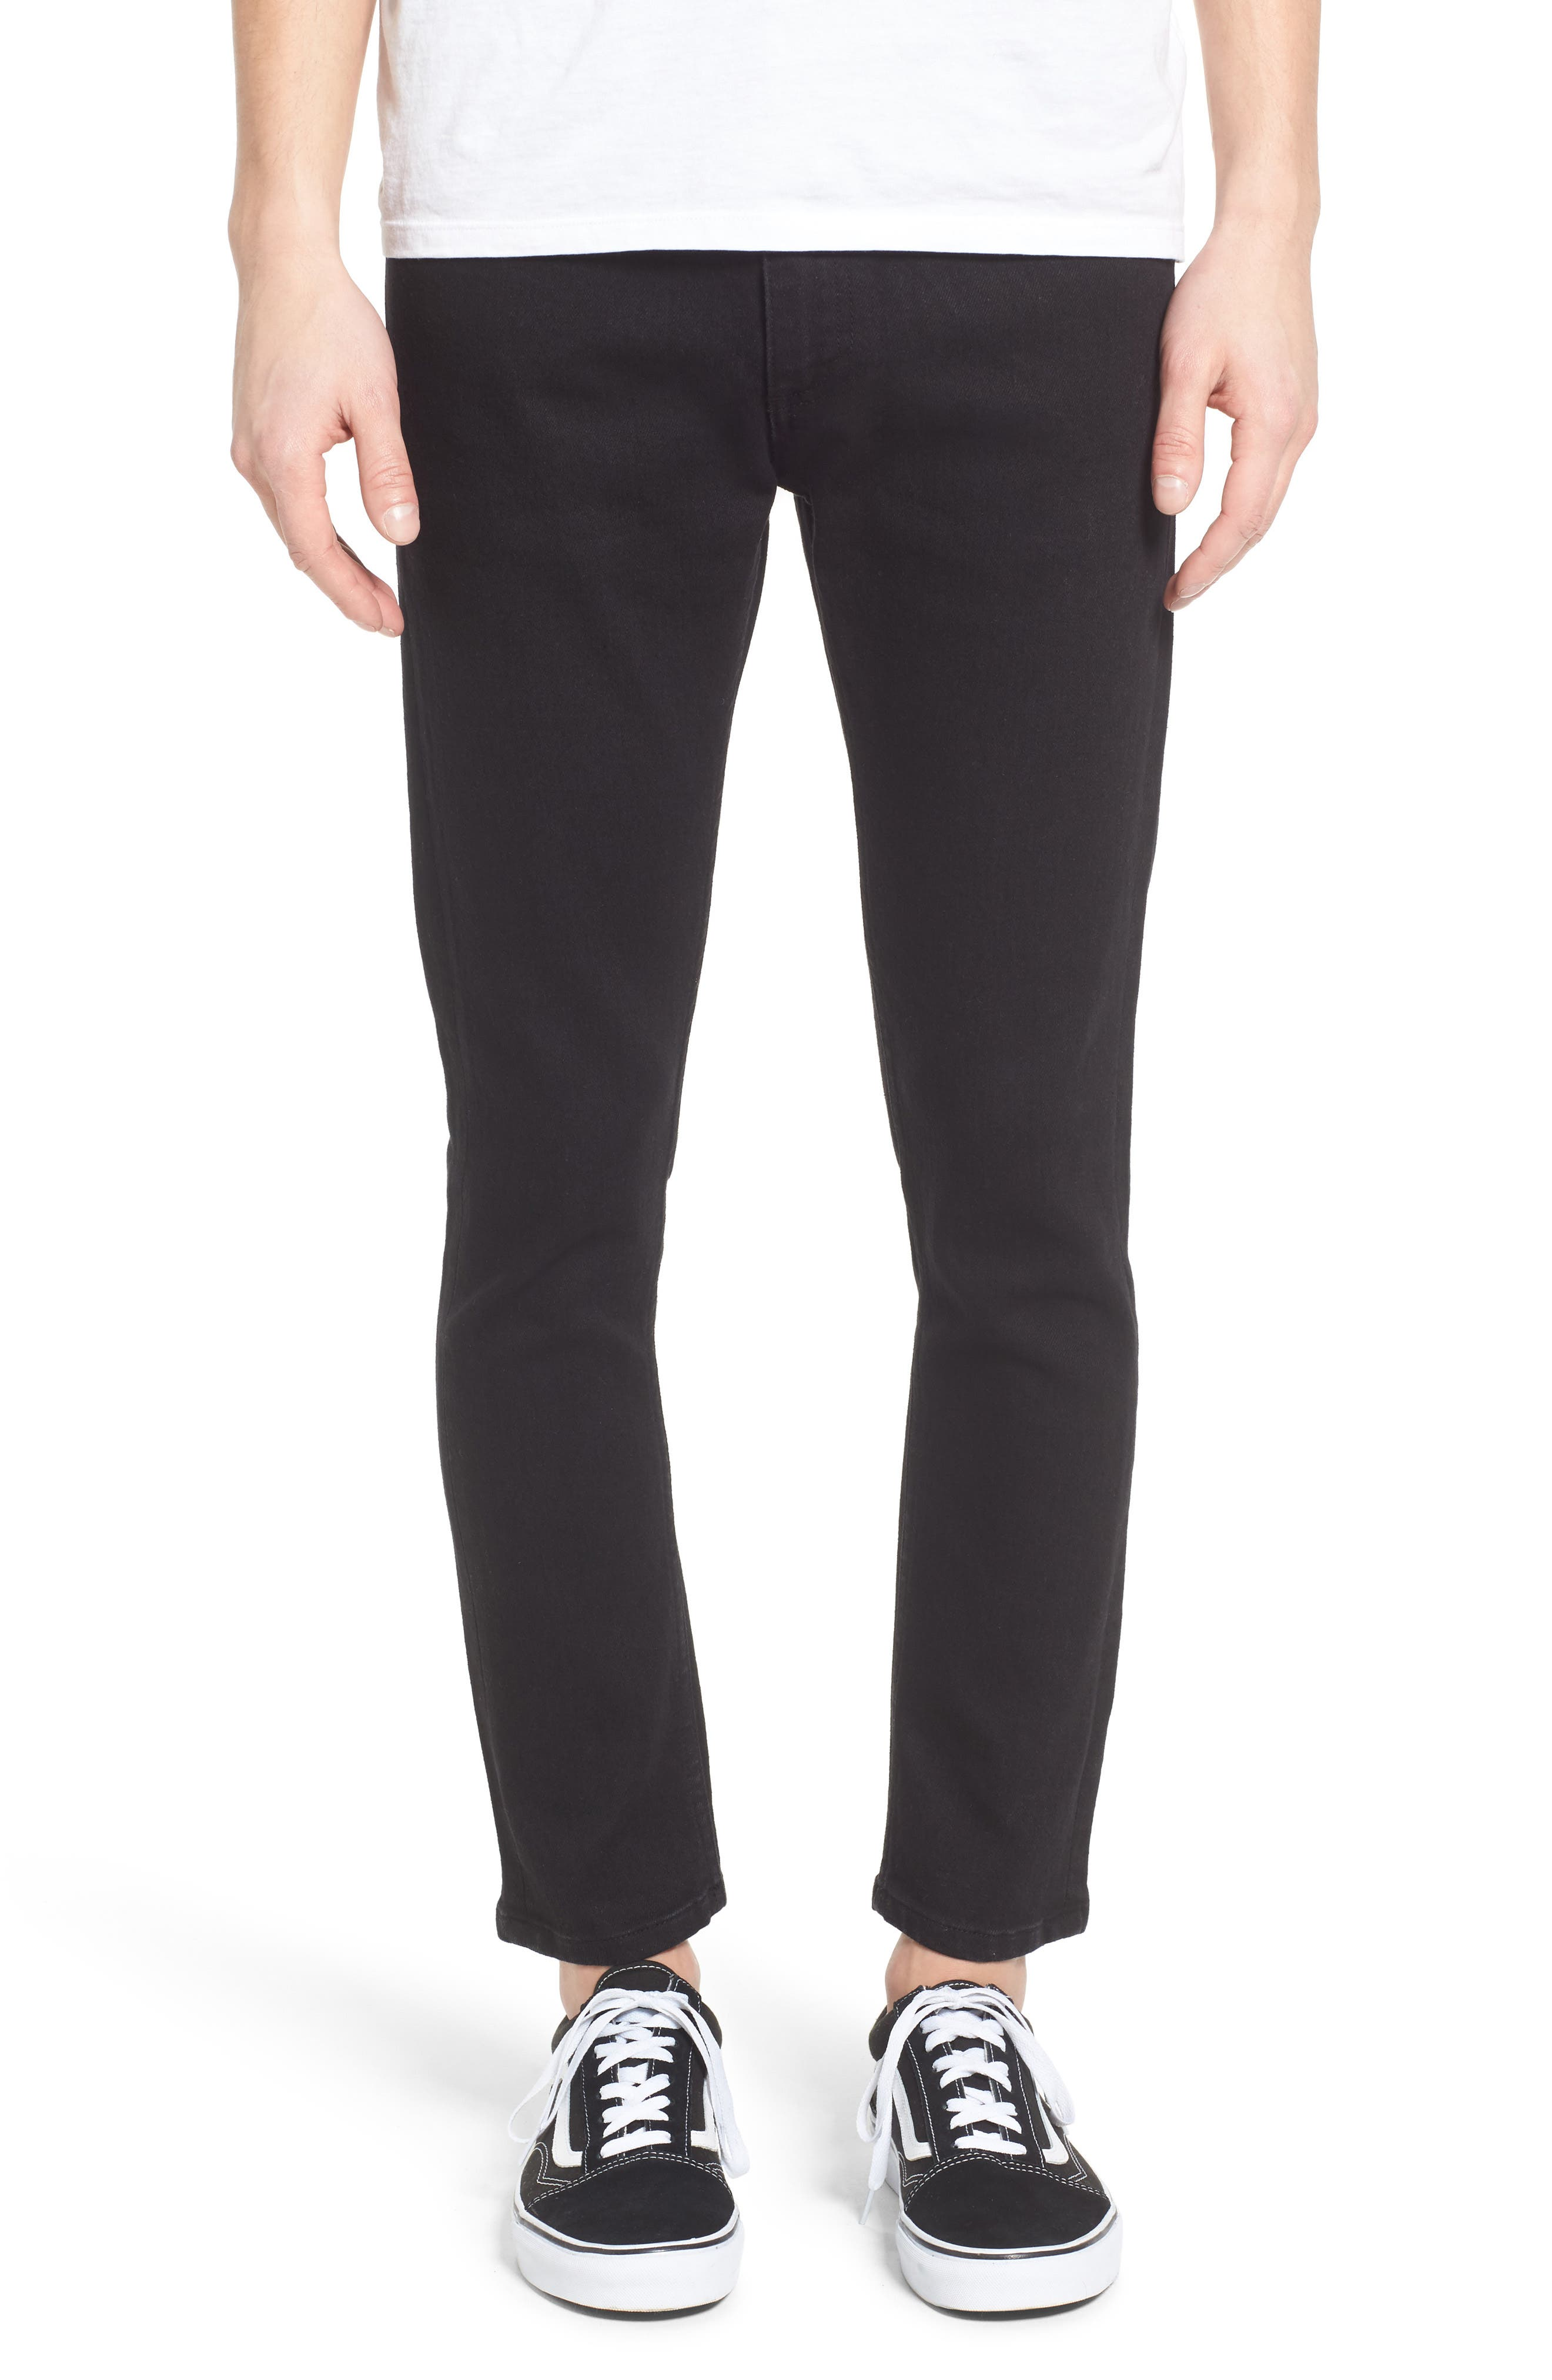 Juvee II Flooded Skinny Fit Jeans,                             Main thumbnail 1, color,                             001